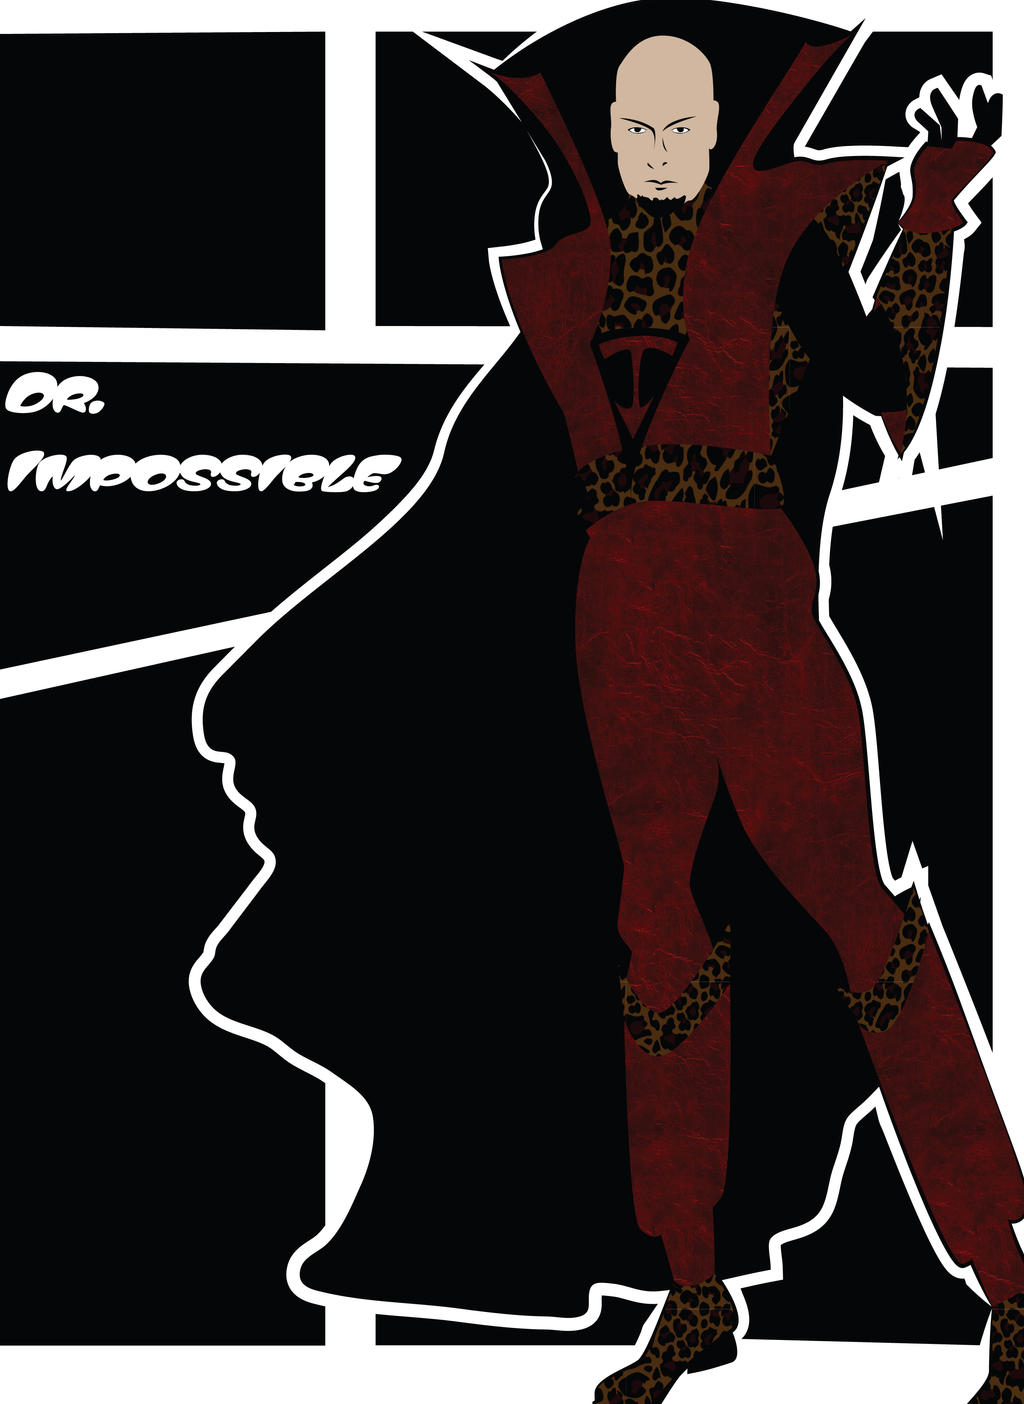 Costume Design: Soon I Will Be Invincible: Dr. I